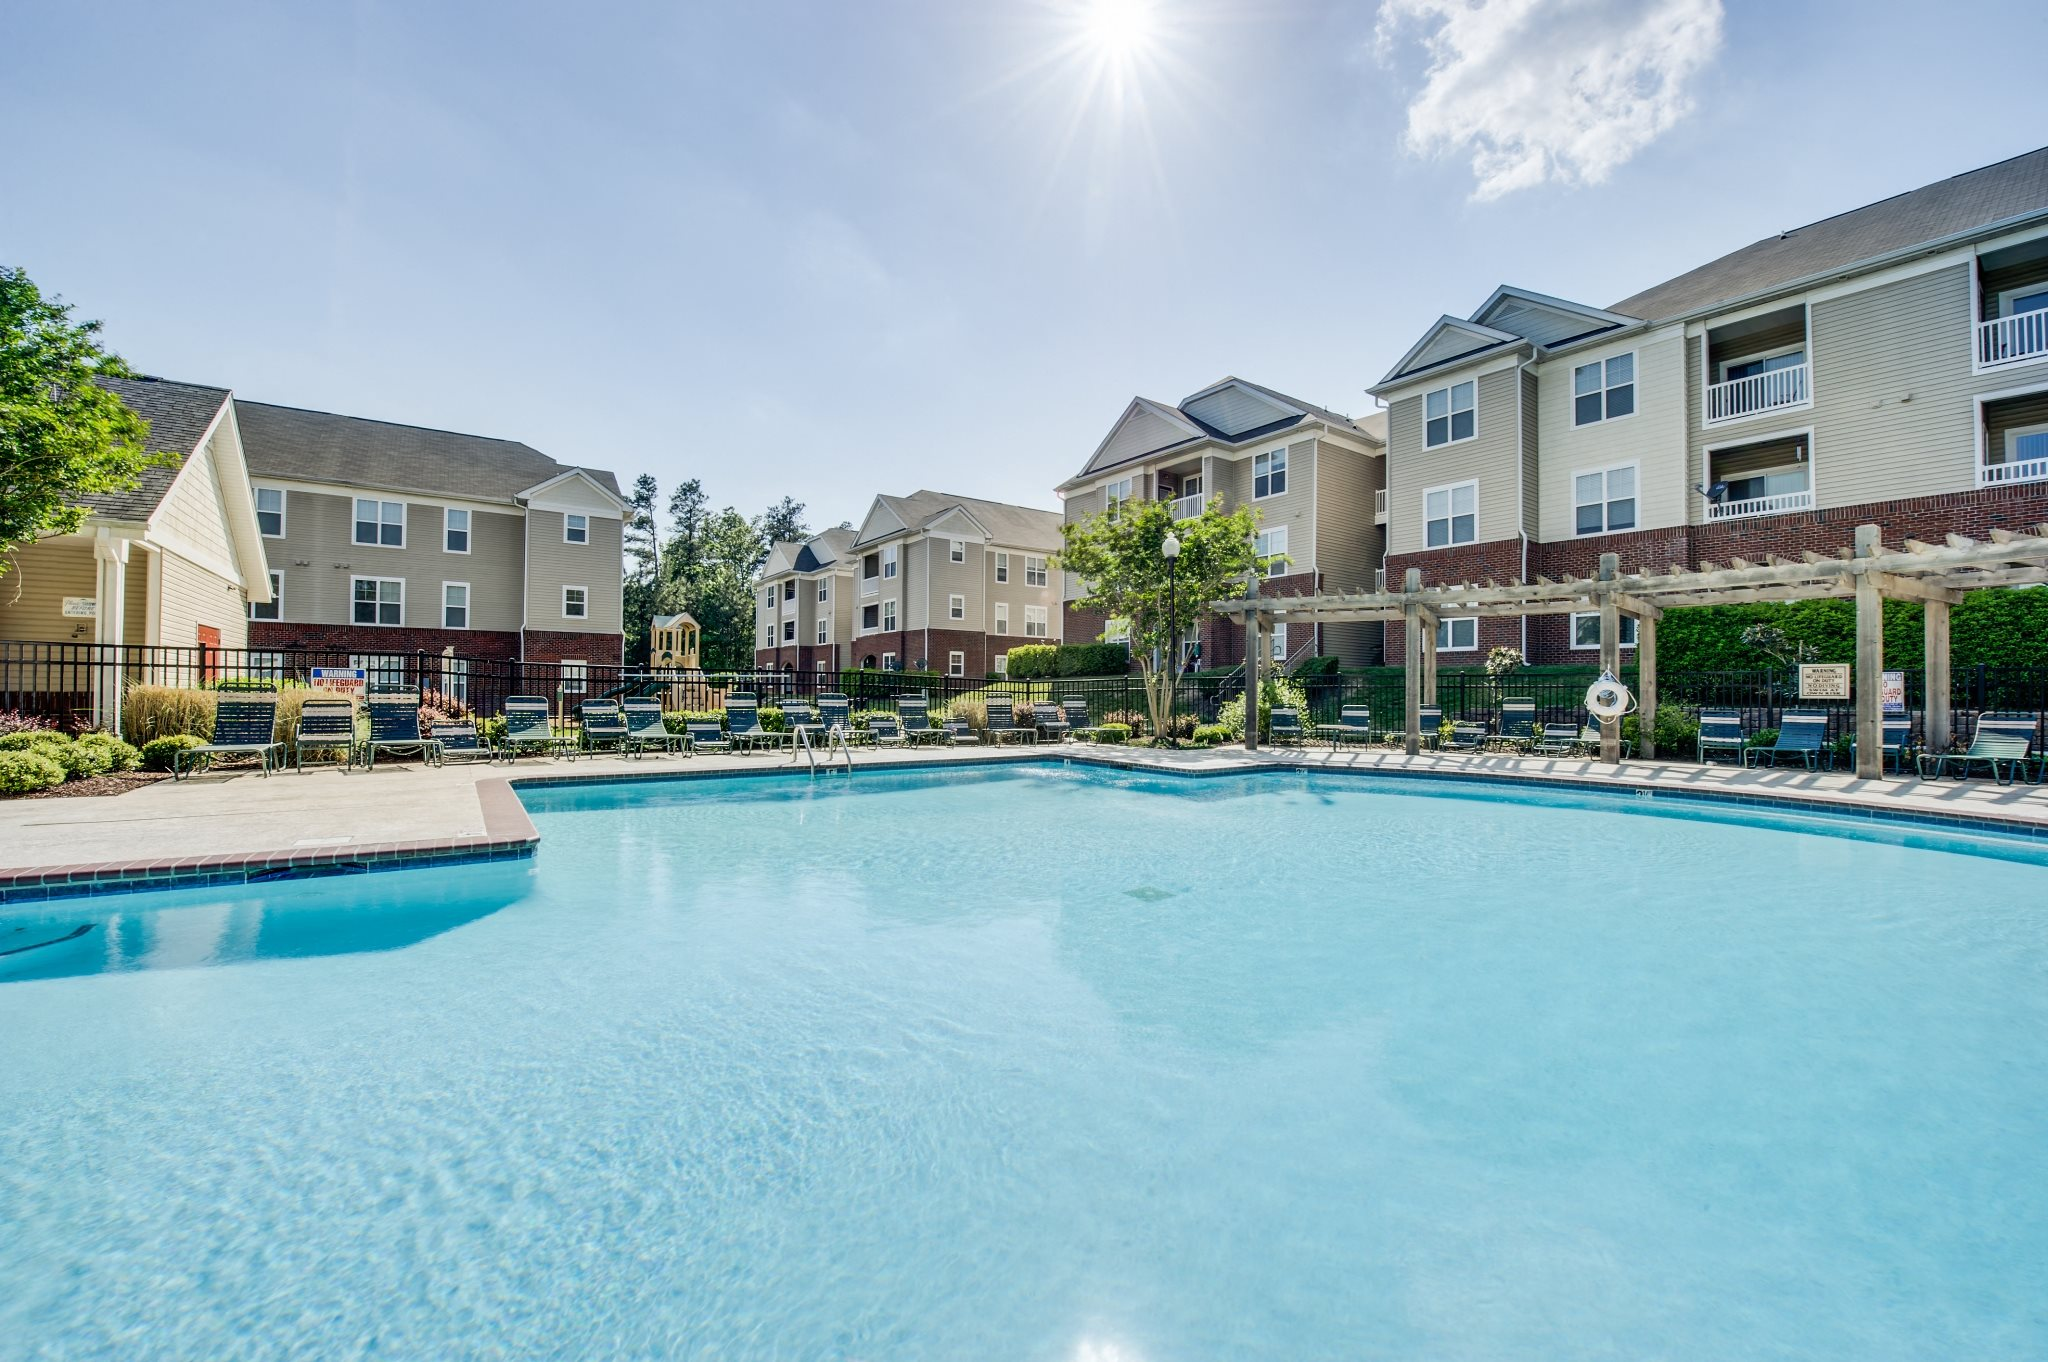 Swimming pool at Magnolia Pointe